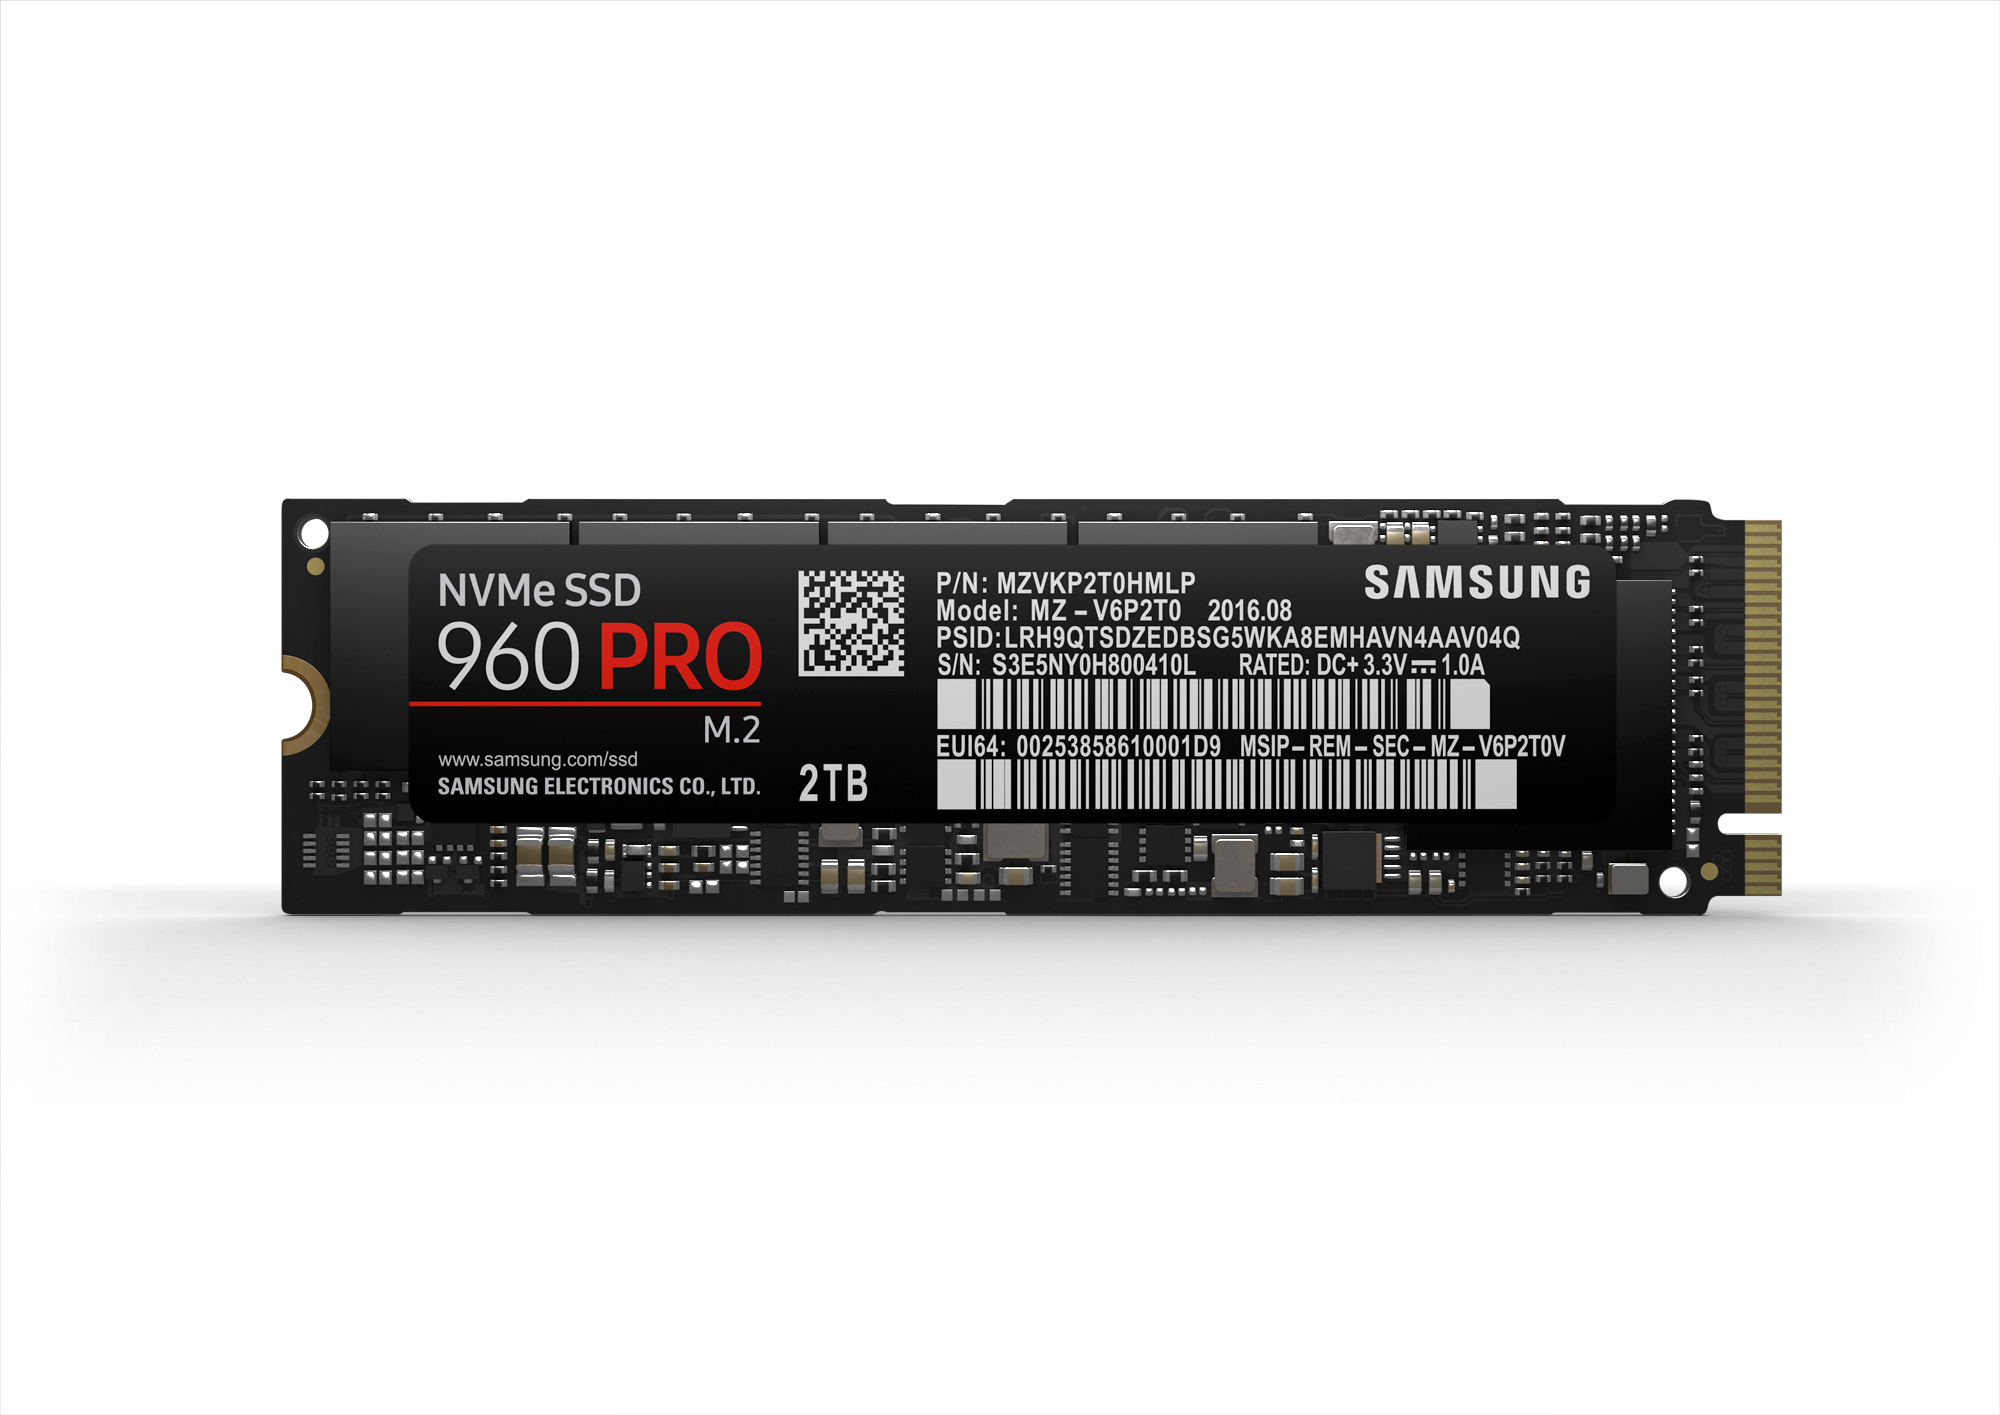 The 960 PRO is clearly more than